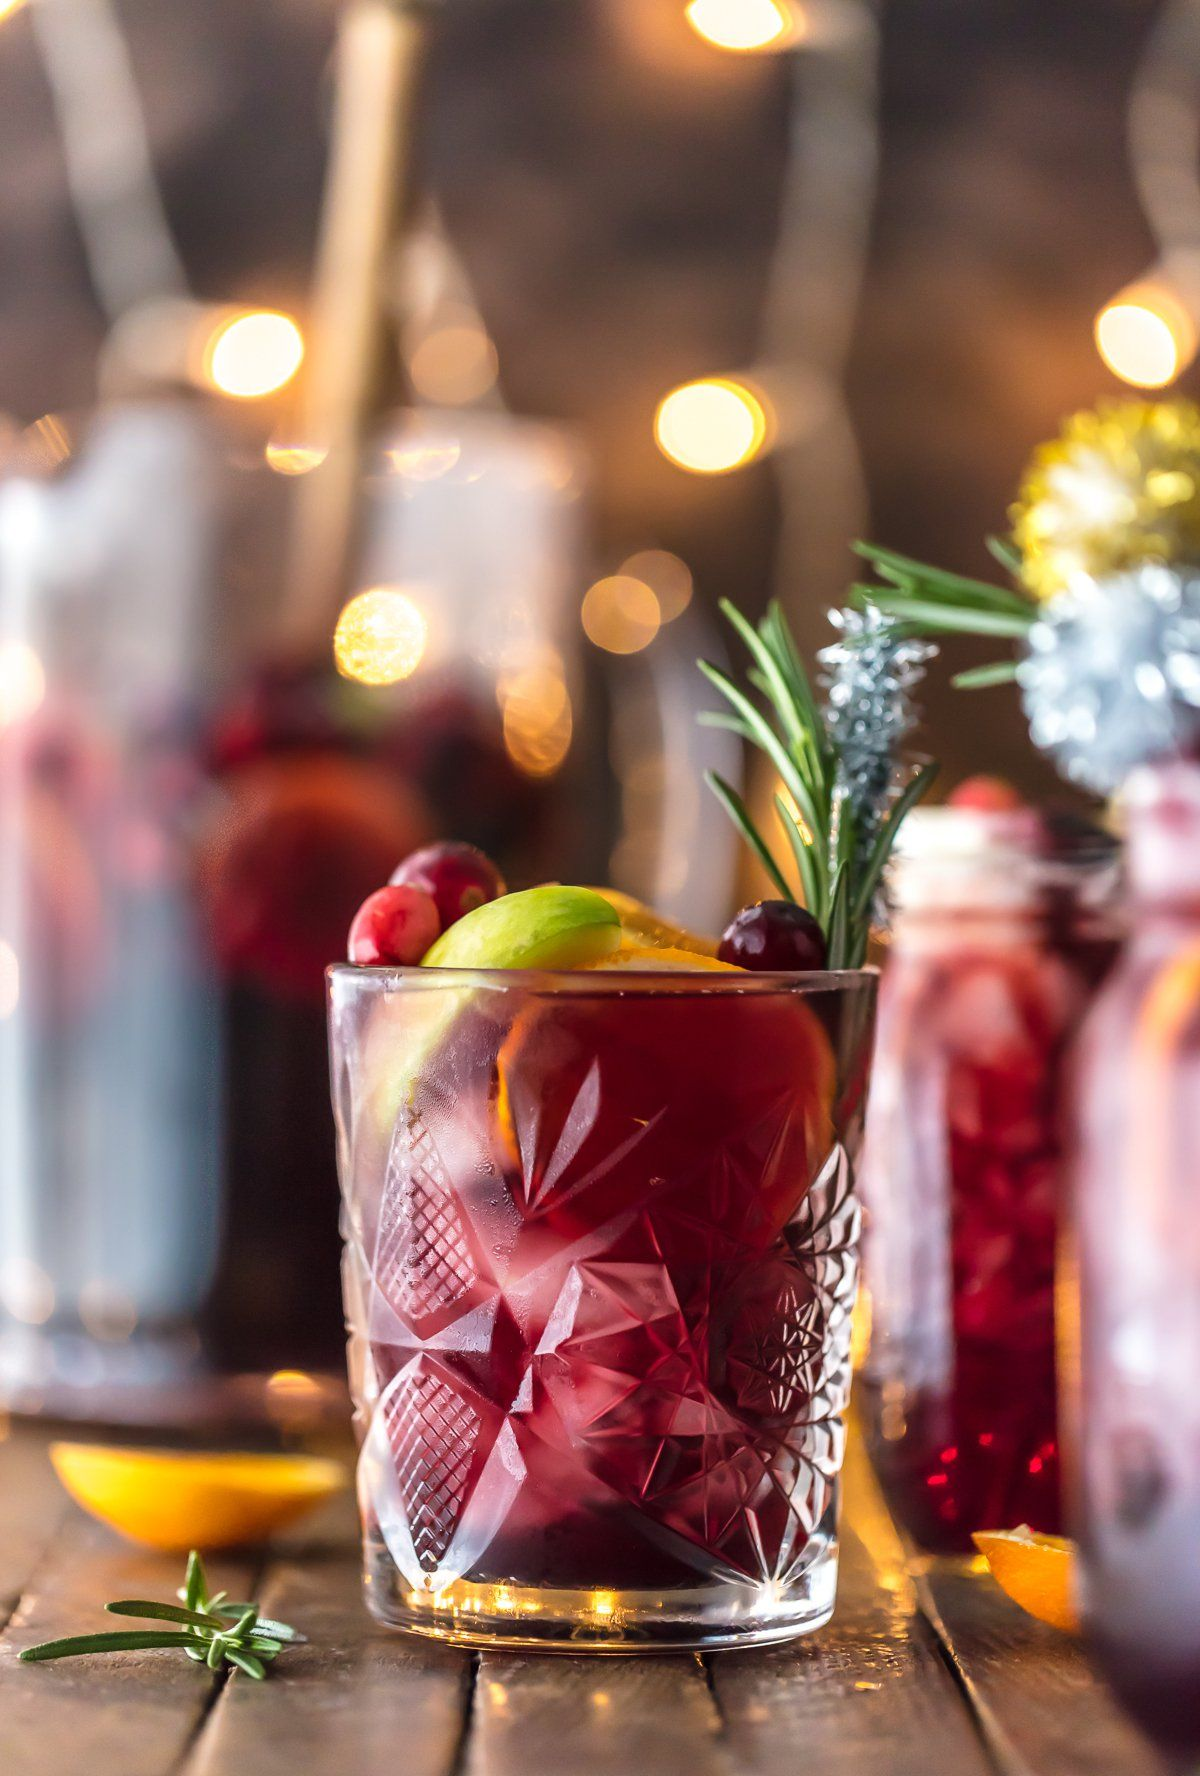 Easy Holiday Sangria Gluten Free Is The Perfect Christmas Cocktail Made With Red Wine Vodka Sp Holiday Sangria Christmas Sangria Christmas Drinks Alcohol